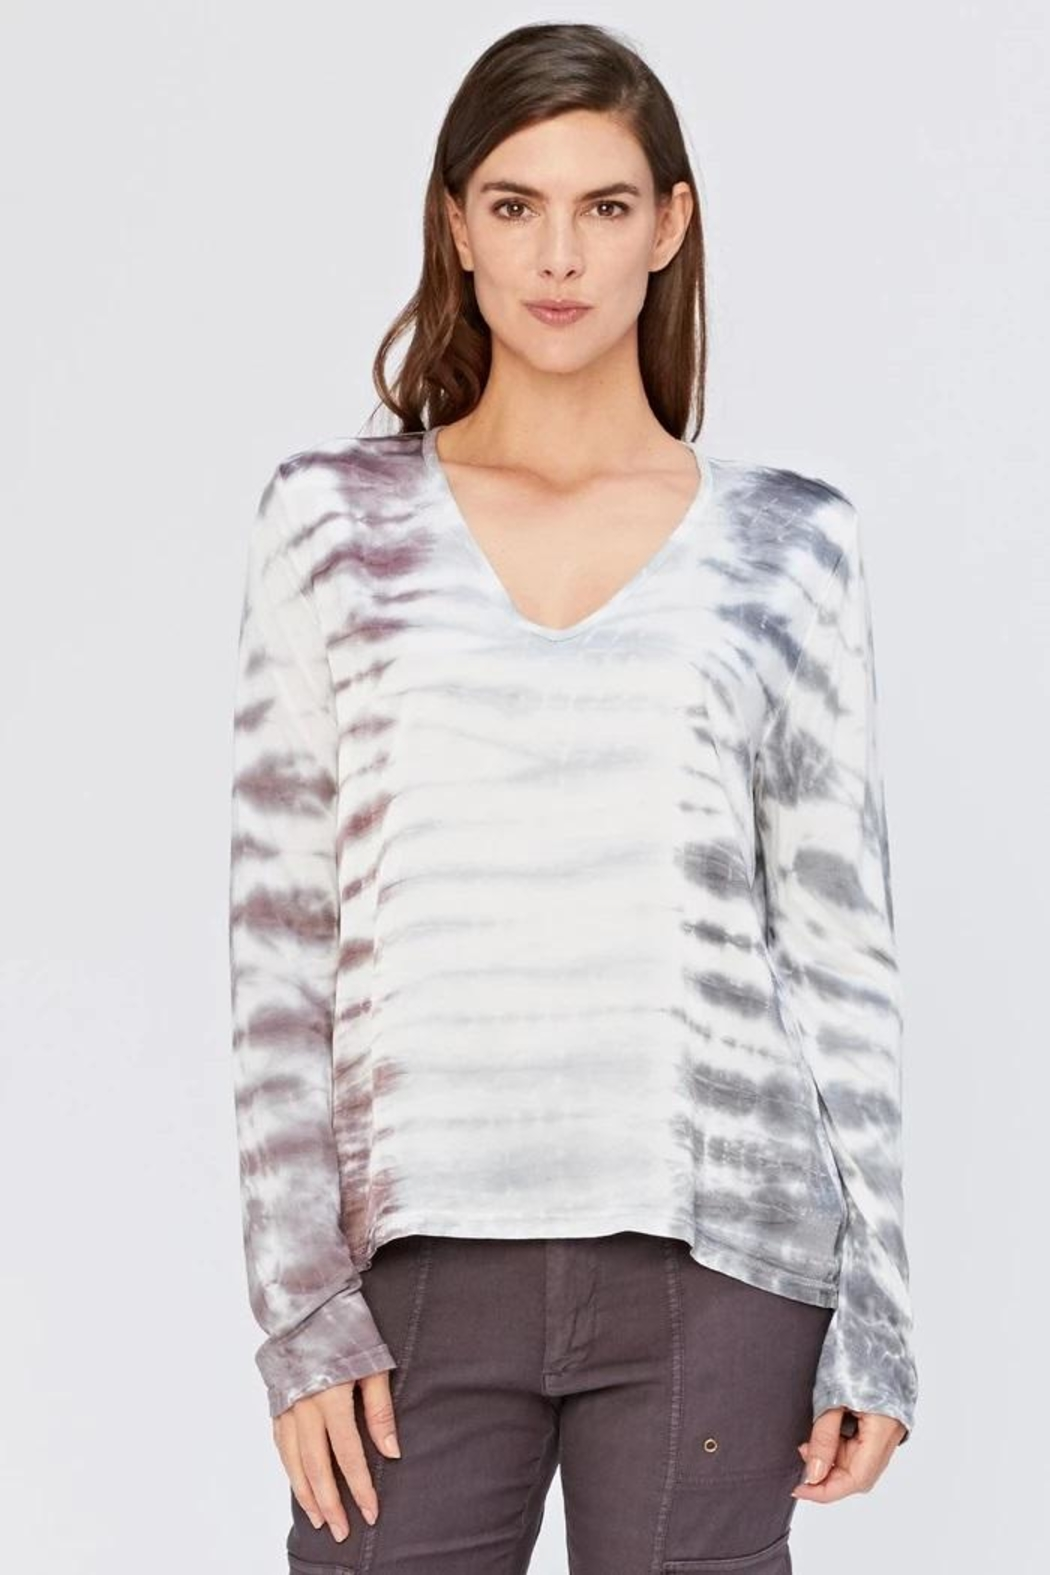 XCVI Wearables Tie-Dye Satin Top - Main Image